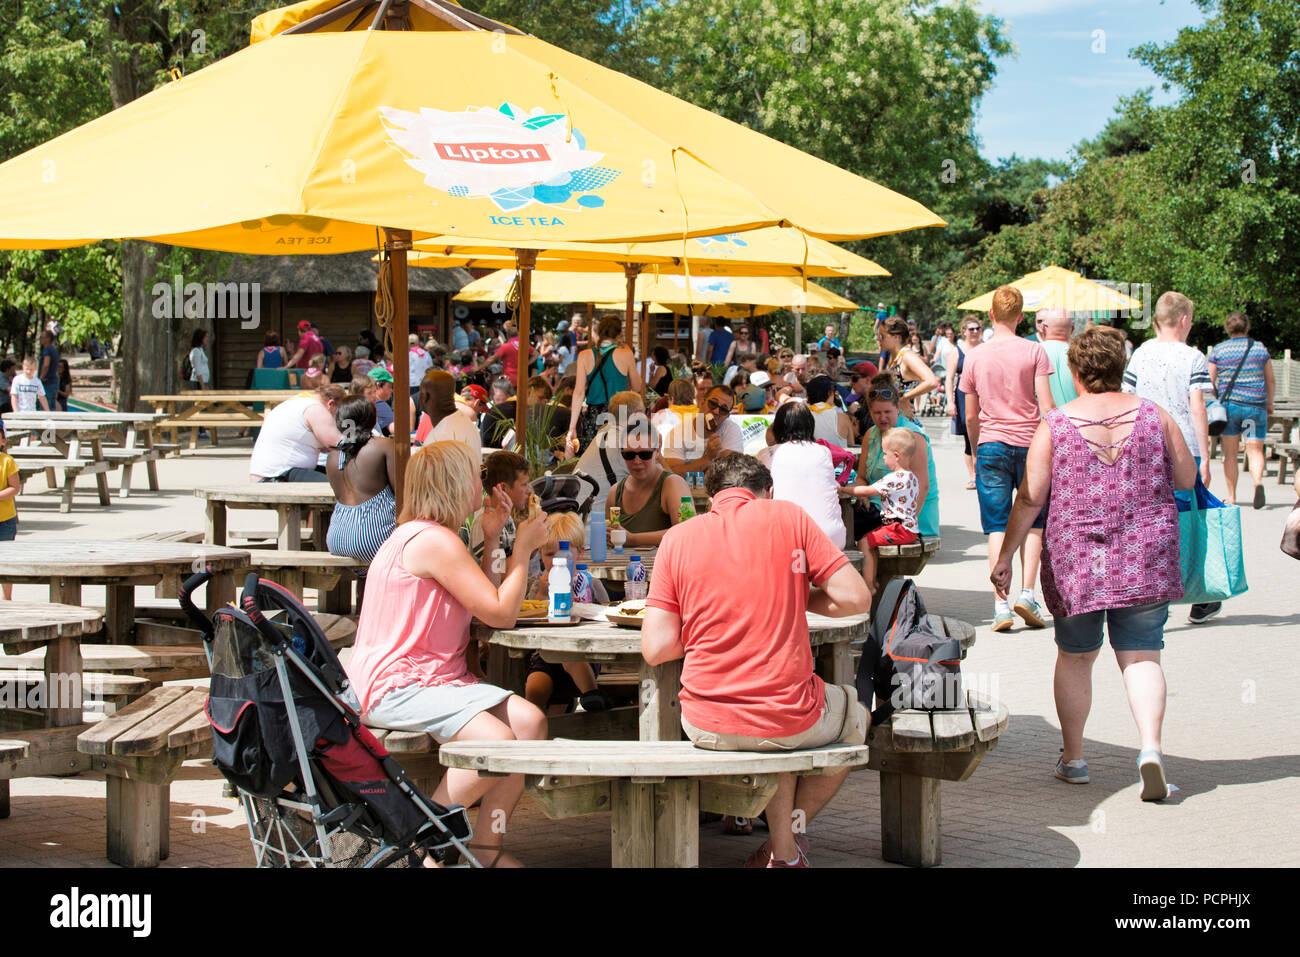 Hilvarenbeel,Holland,30-july-2018:people enjoy their ice cream drinks and food on a terrace during the hot summer ever measured in the Netherlands and the rest of Europe - Stock Image